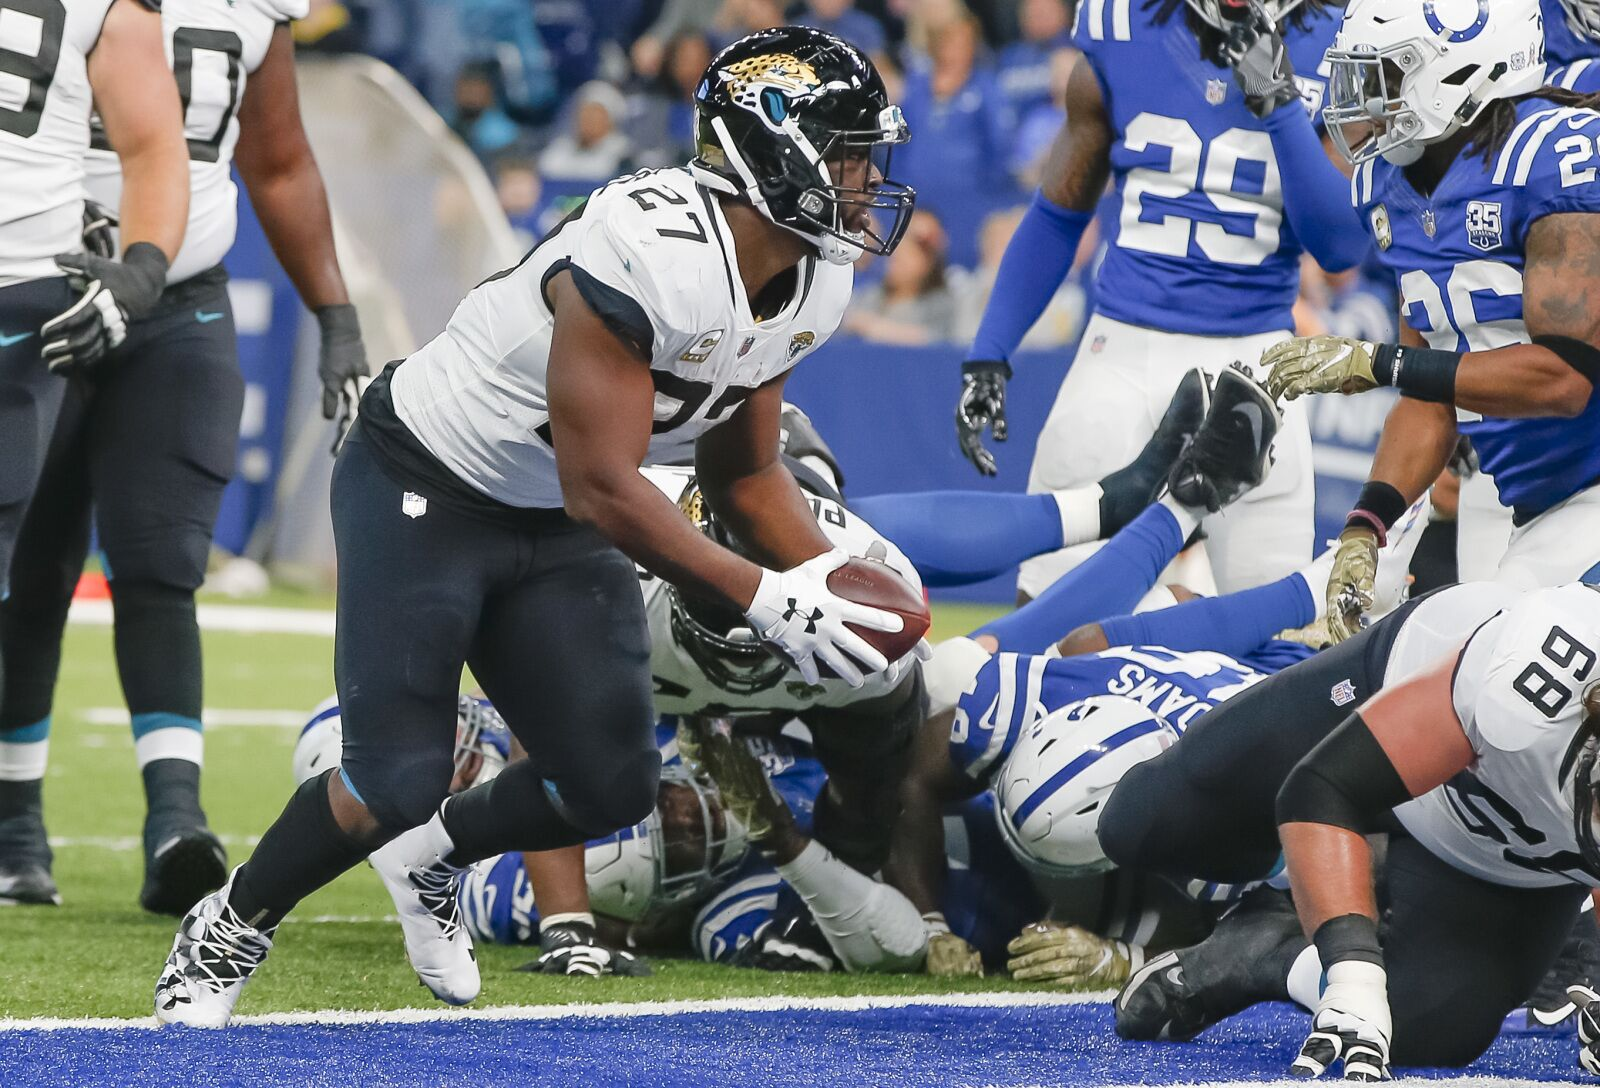 57008e26 Jaguars fall to the Colts: Where does this team go from here?